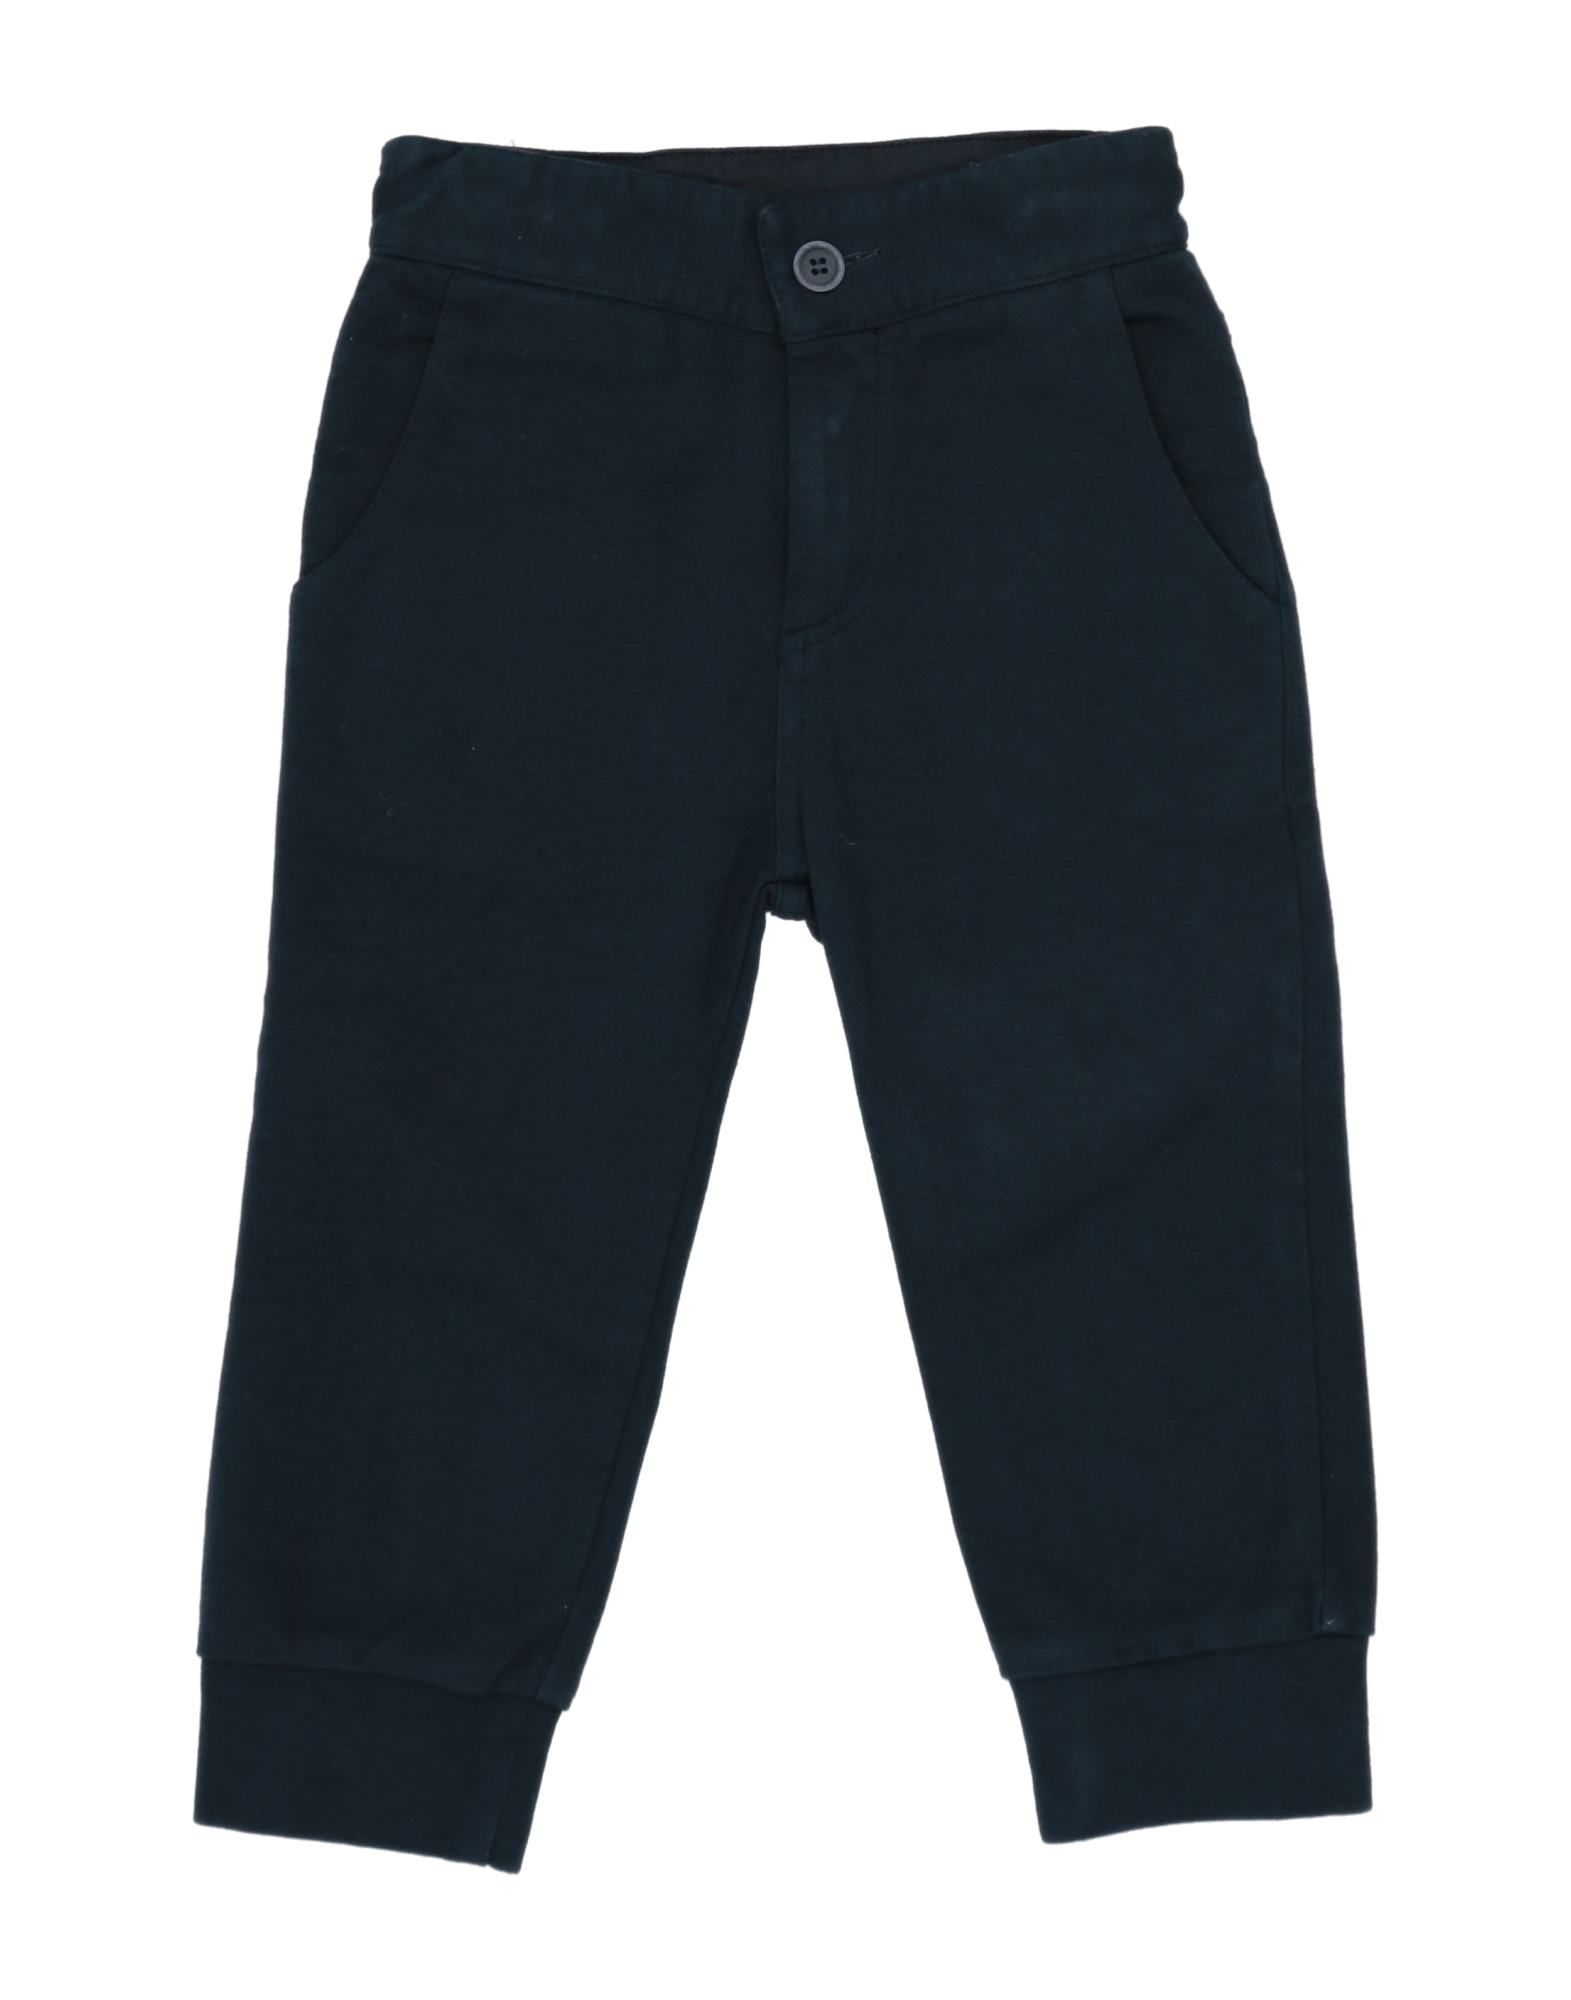 Muffin & Co. Kids' Casual Pants In Blue